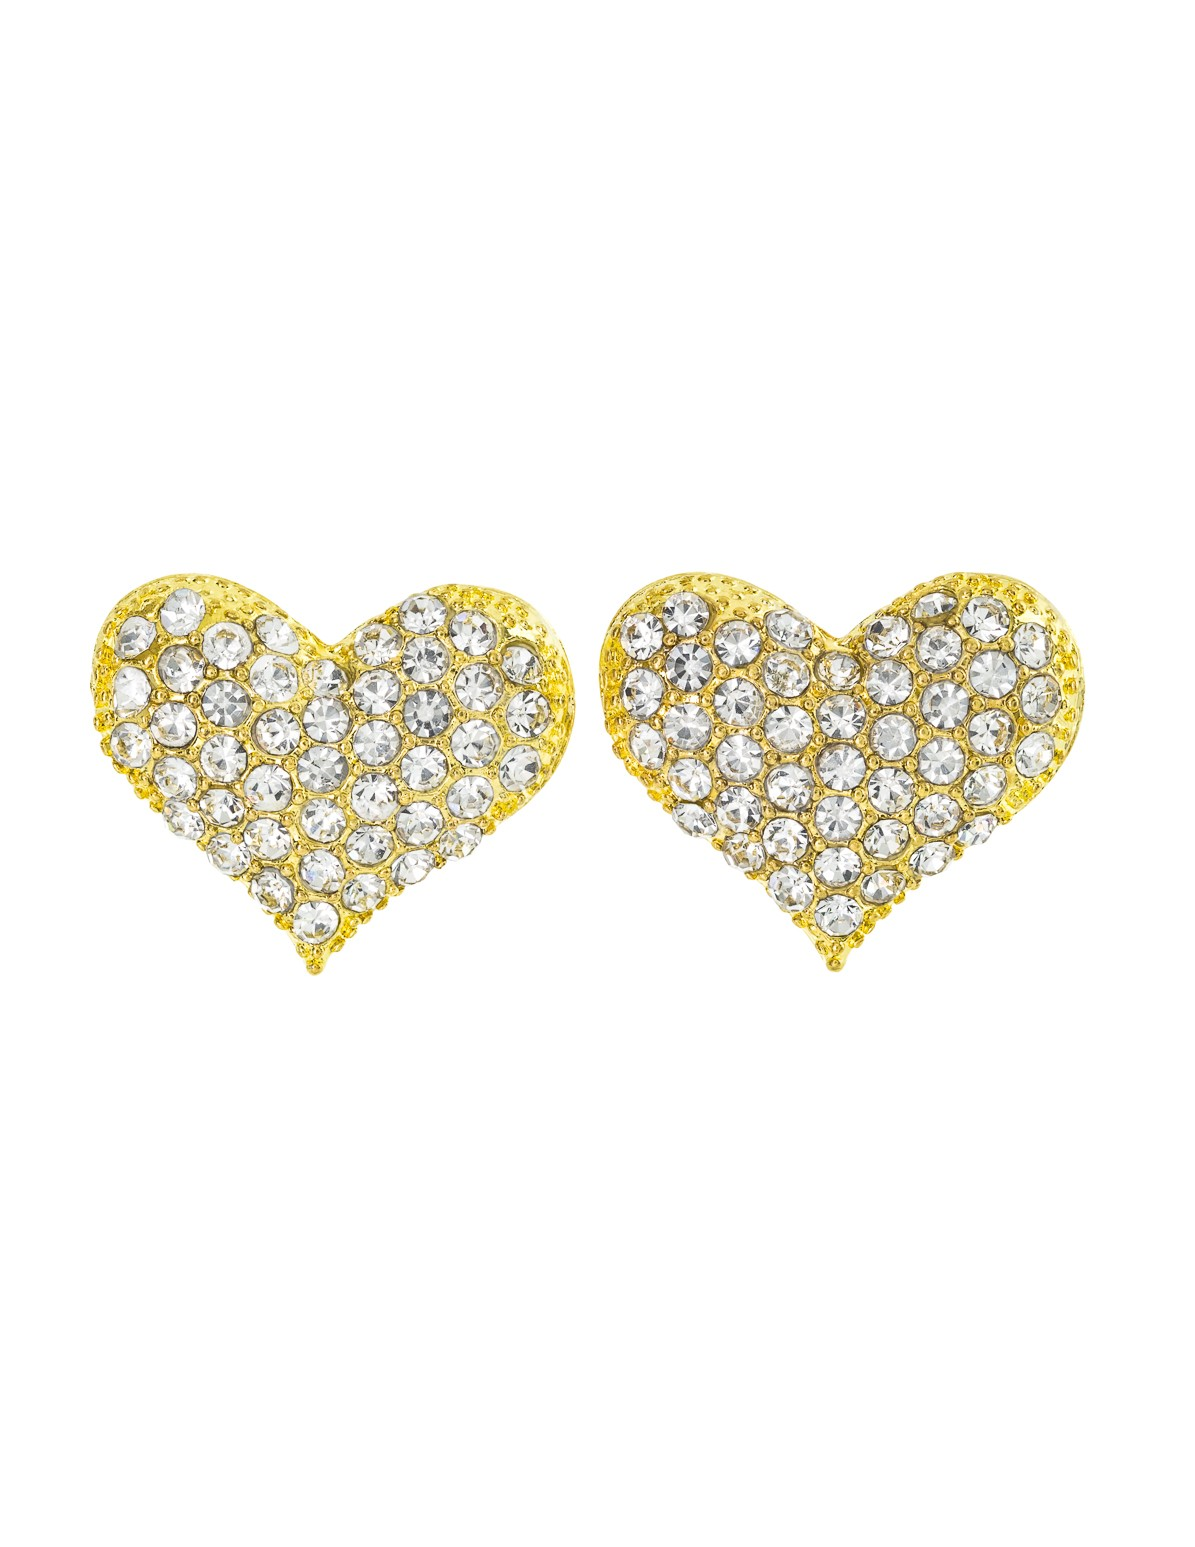 Heart Rhinestone Earrings